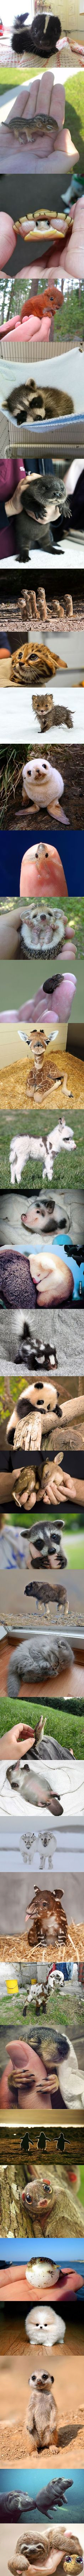 Look at all these baby animals... - Imgur